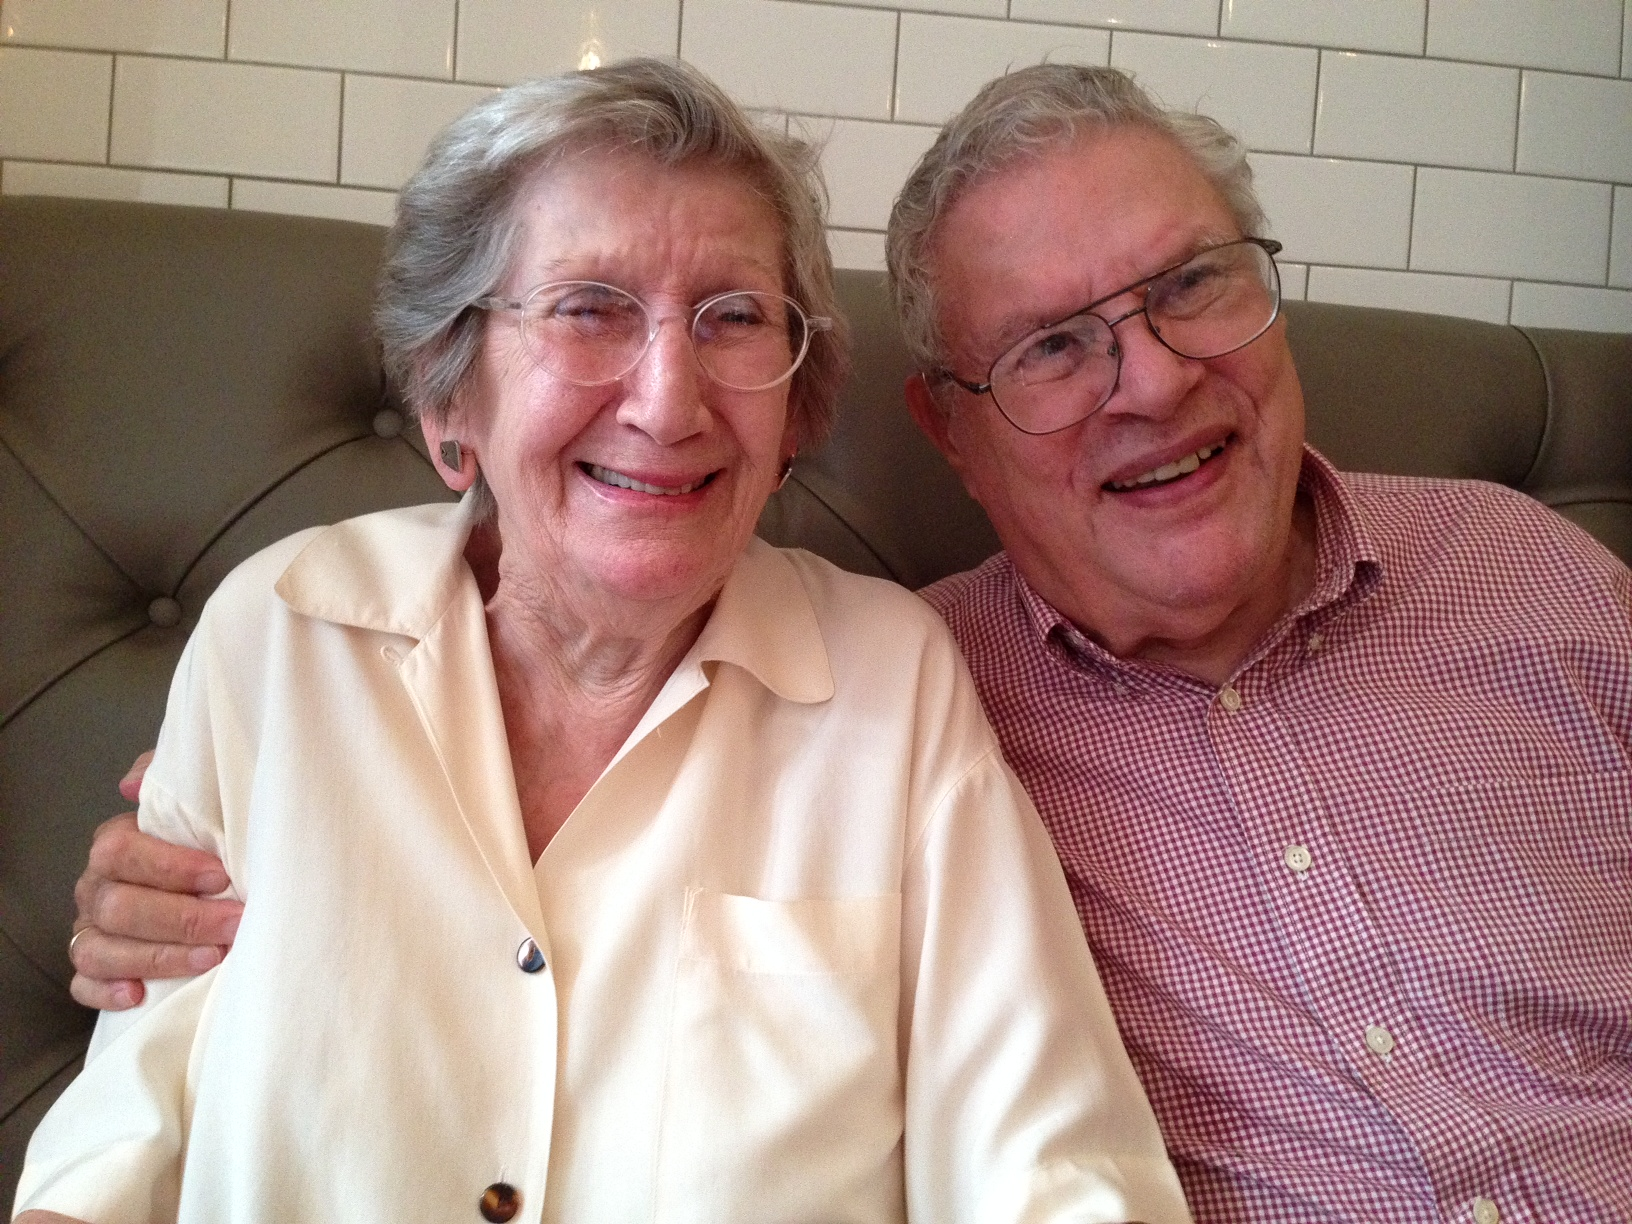 Nina and Steve, 20 Aug 2014, 60 years